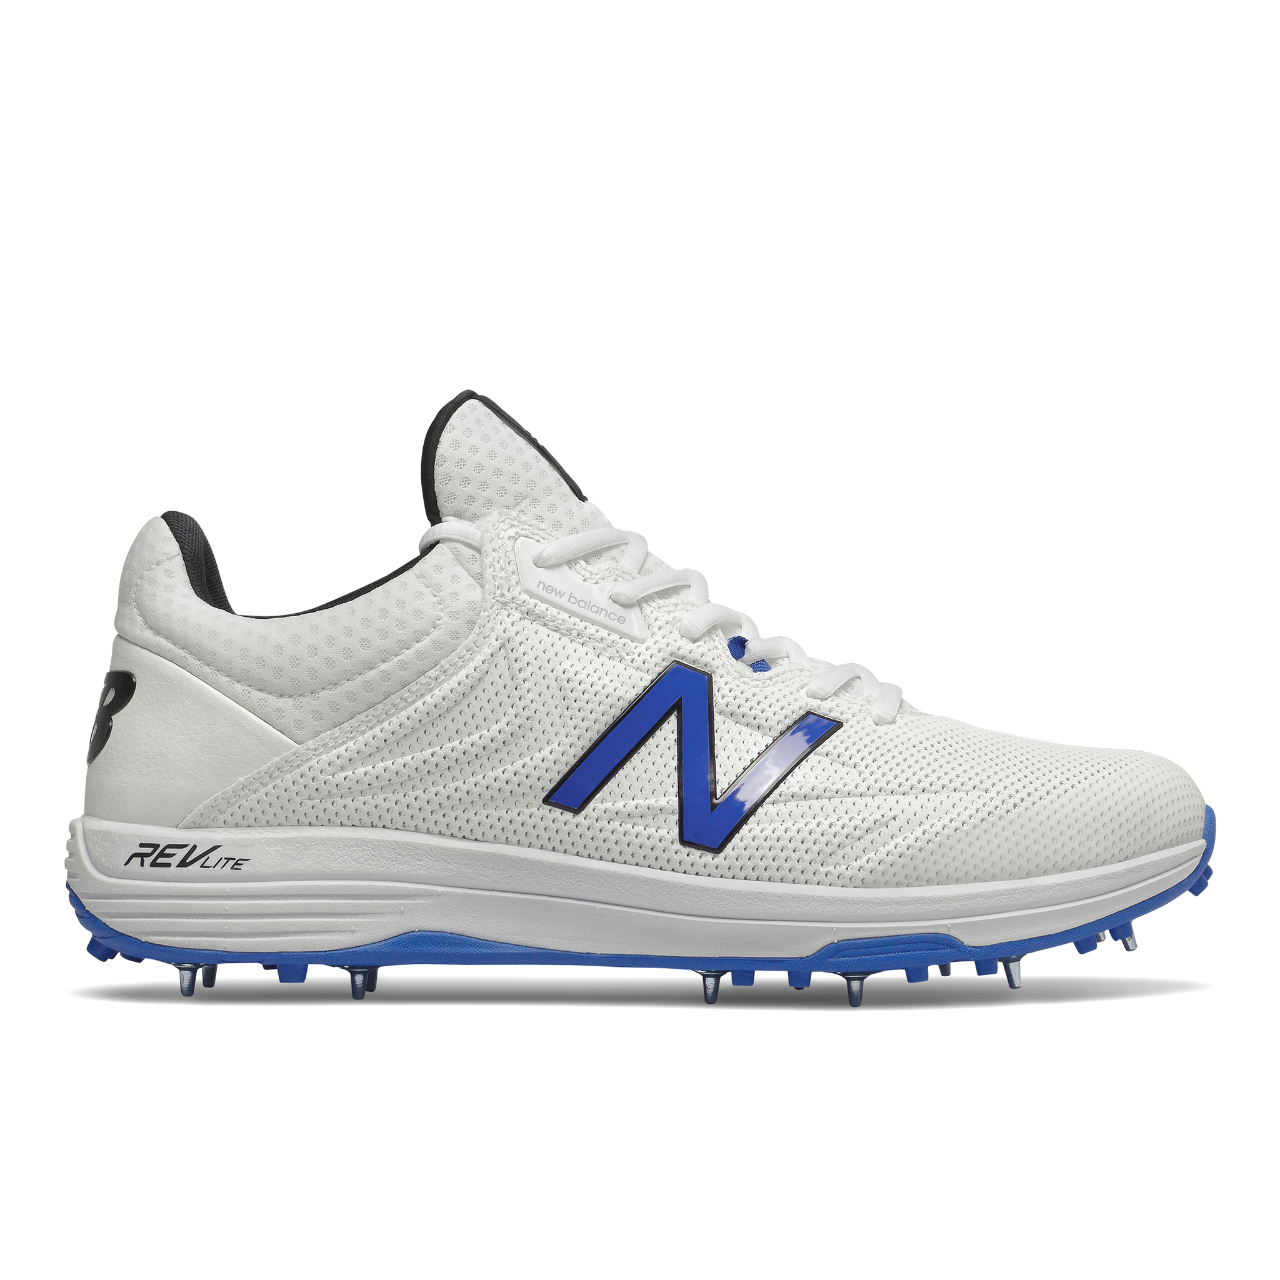 2021 New Balance CK10 BL4 Cricket Shoes